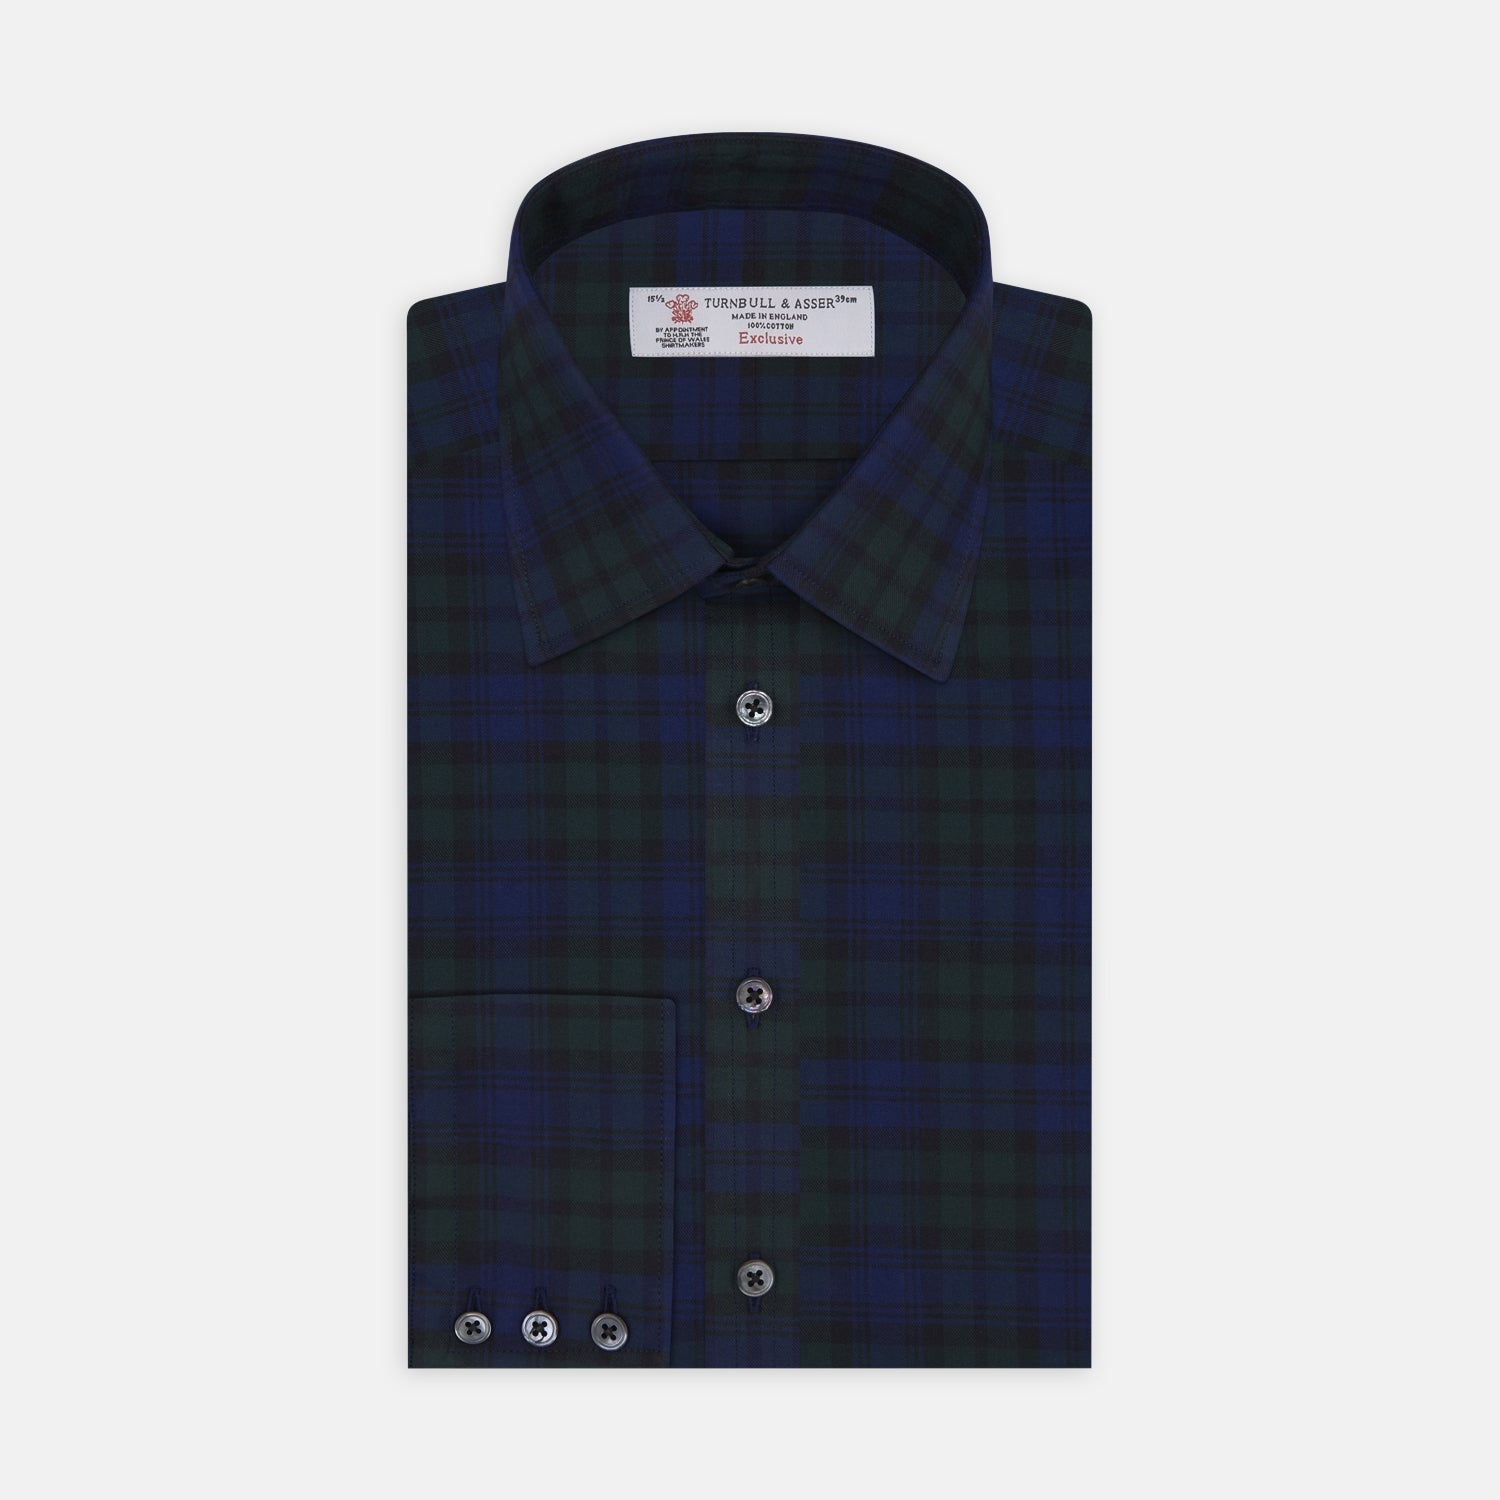 Blackwatch Brushed Cotton Shirt with T&A Collar and Button Cuffs